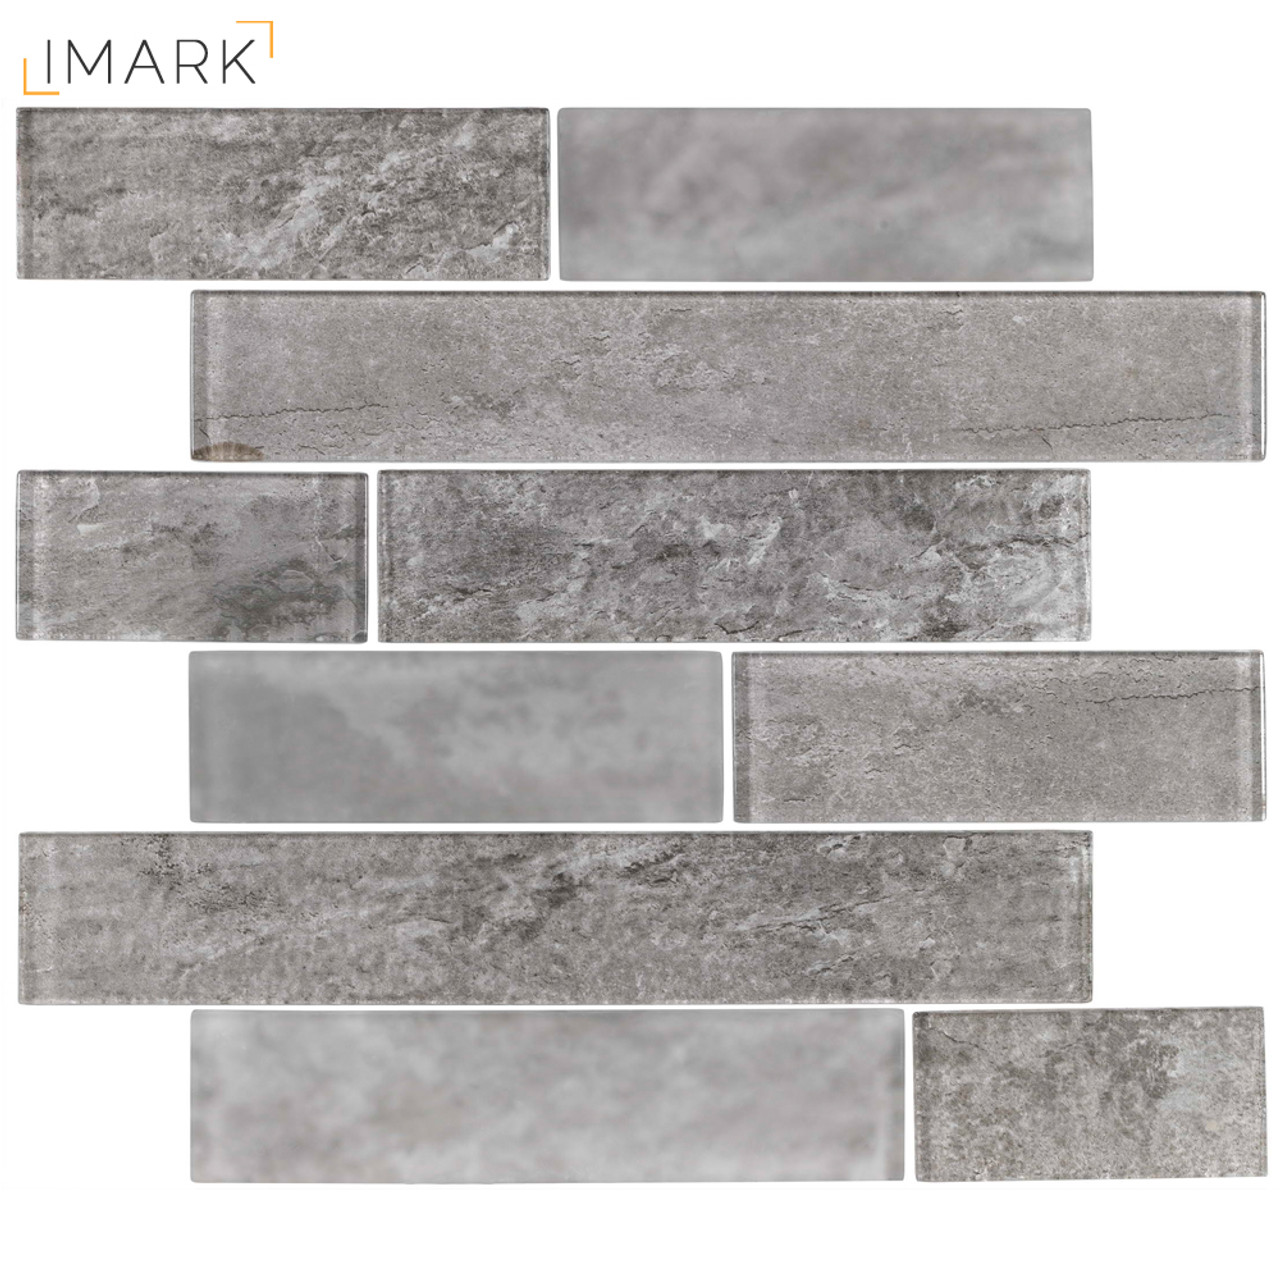 Loft ash grey subway tile patterns glass mosaic tilling gcp402 wholesale loft ash grey subway tile patterns glass mosaic tilling gcp402 dailygadgetfo Image collections